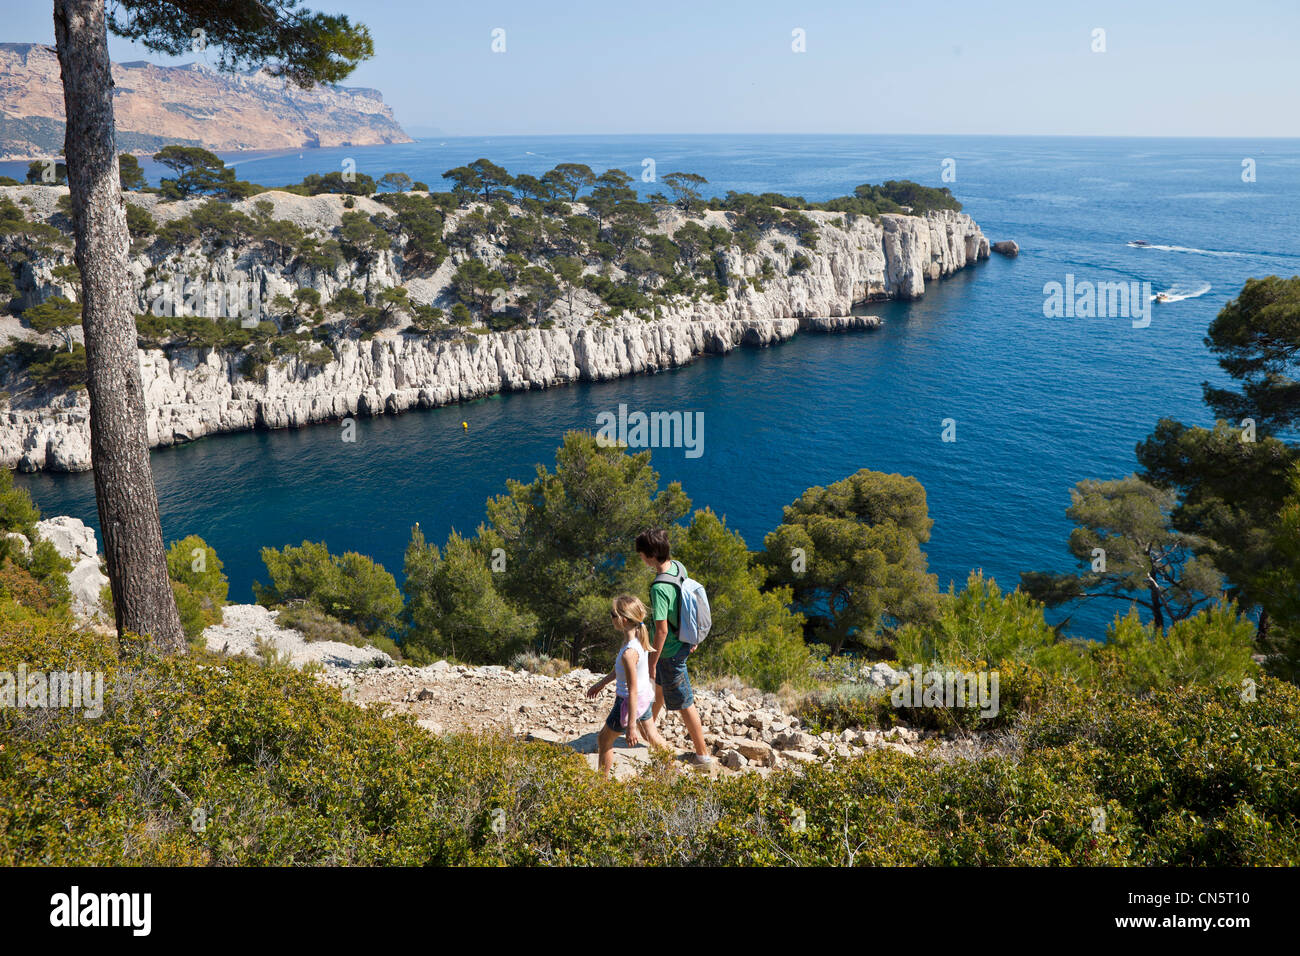 France, Bouches du Rhone, Cassis, the creek (Calanque) of Port Pin, children hiking - Stock Image